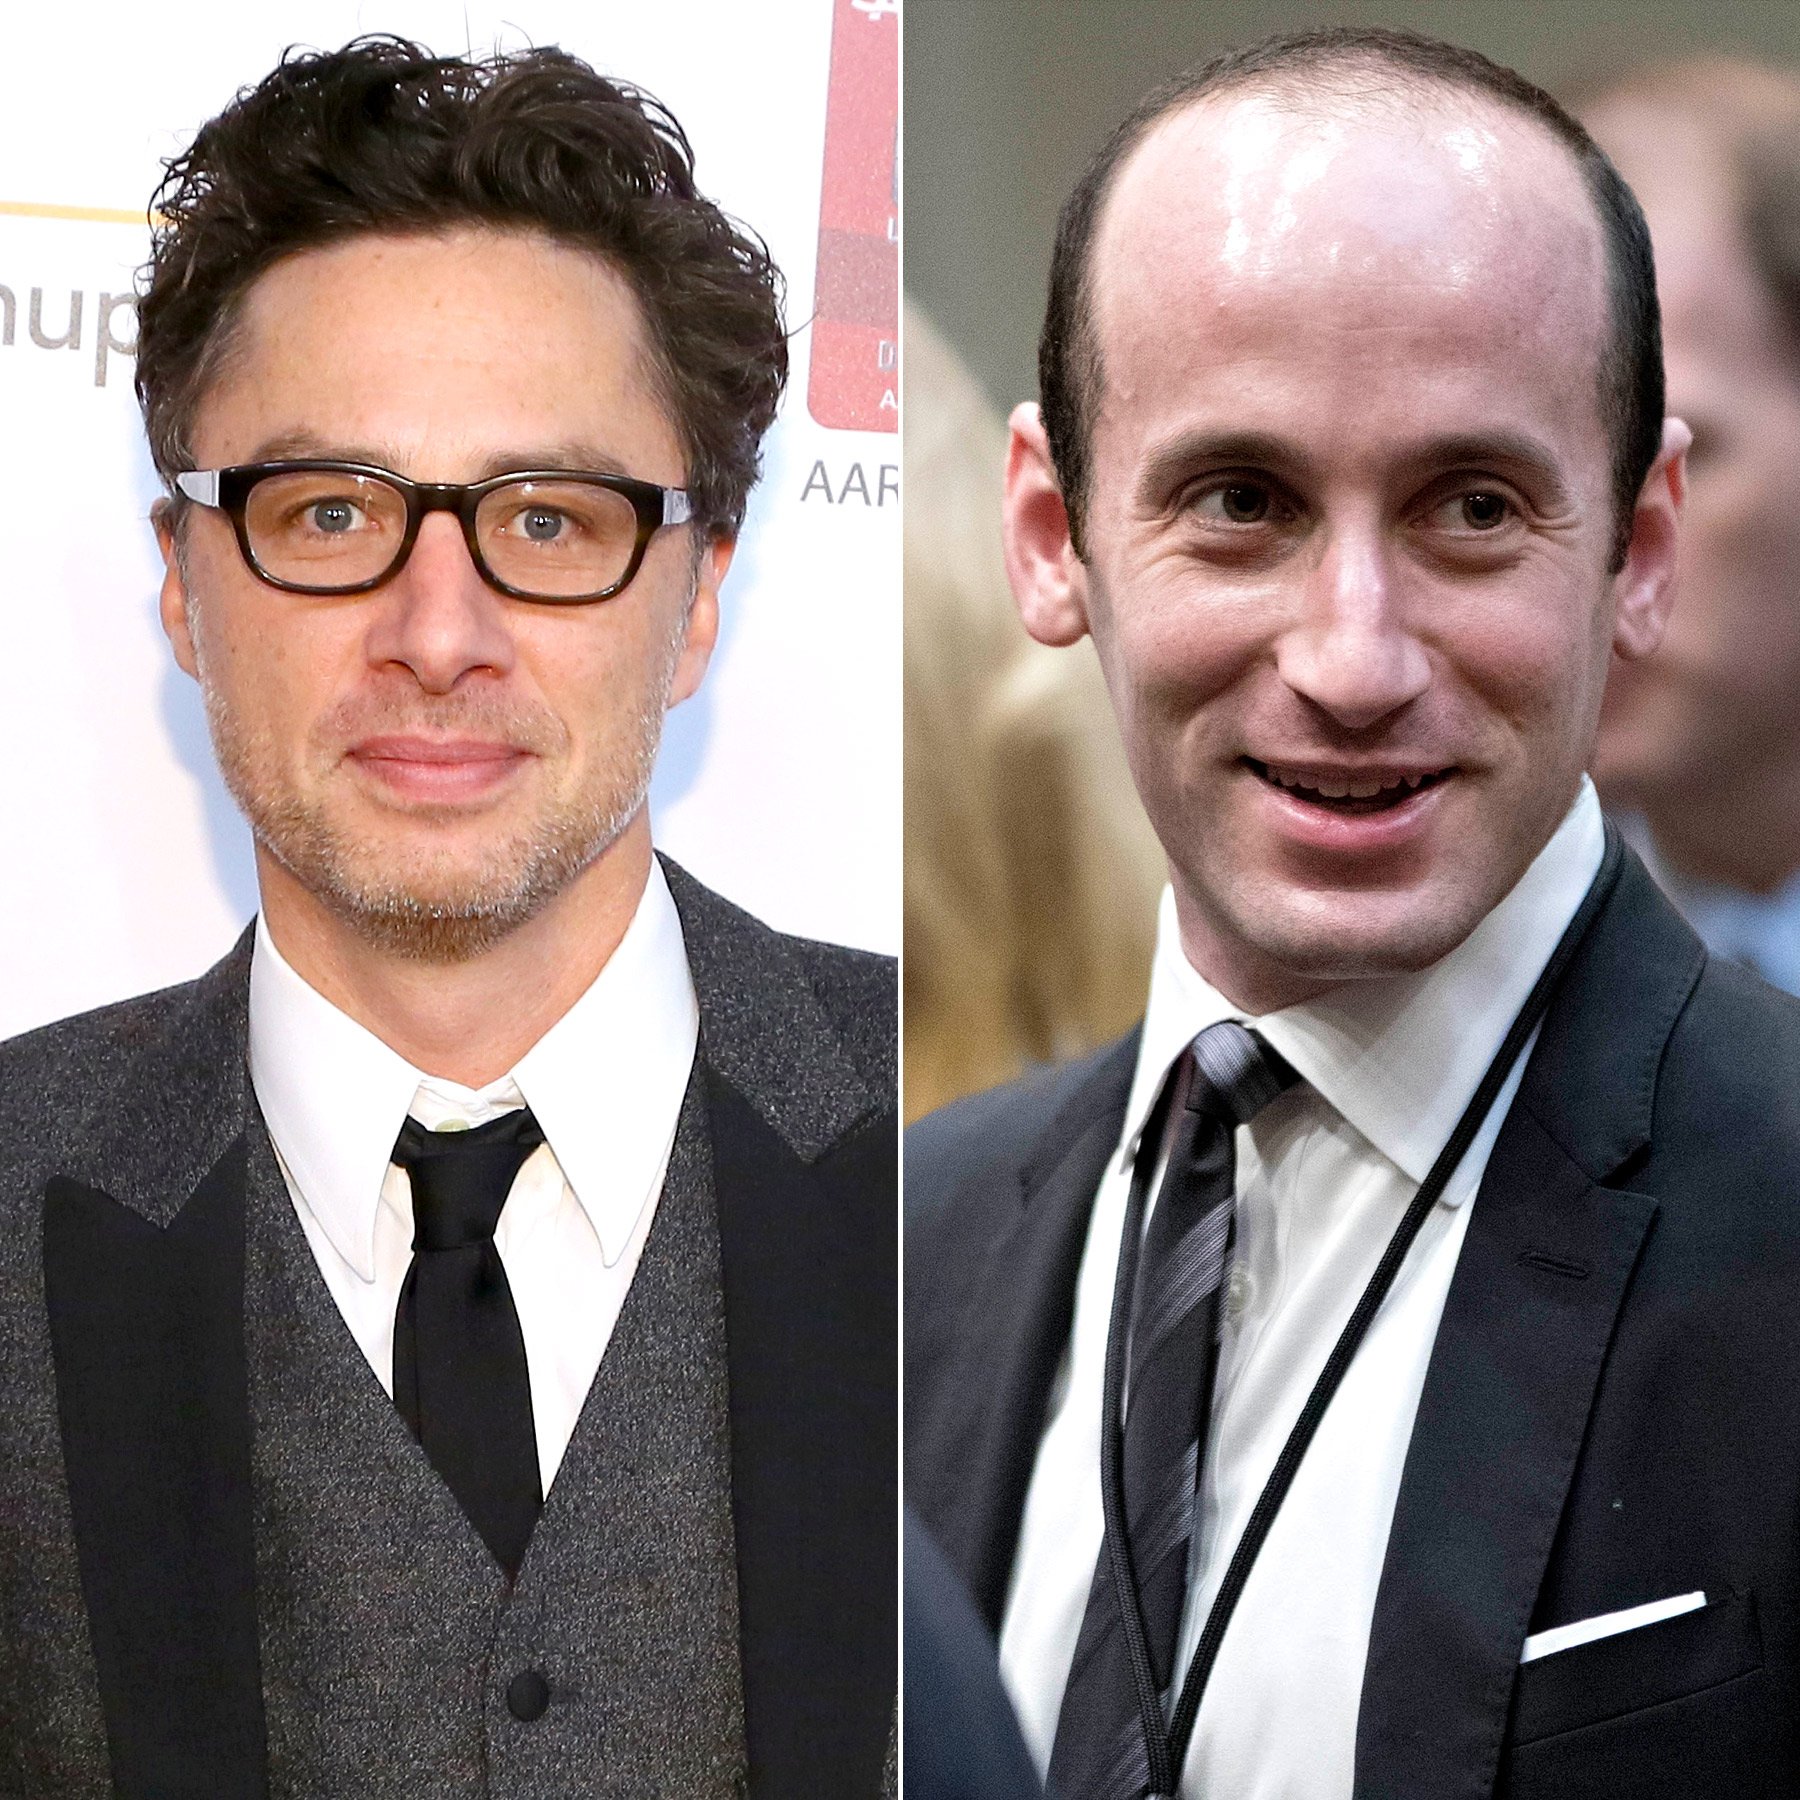 Zach Braff will play Stephen Miller on SNL